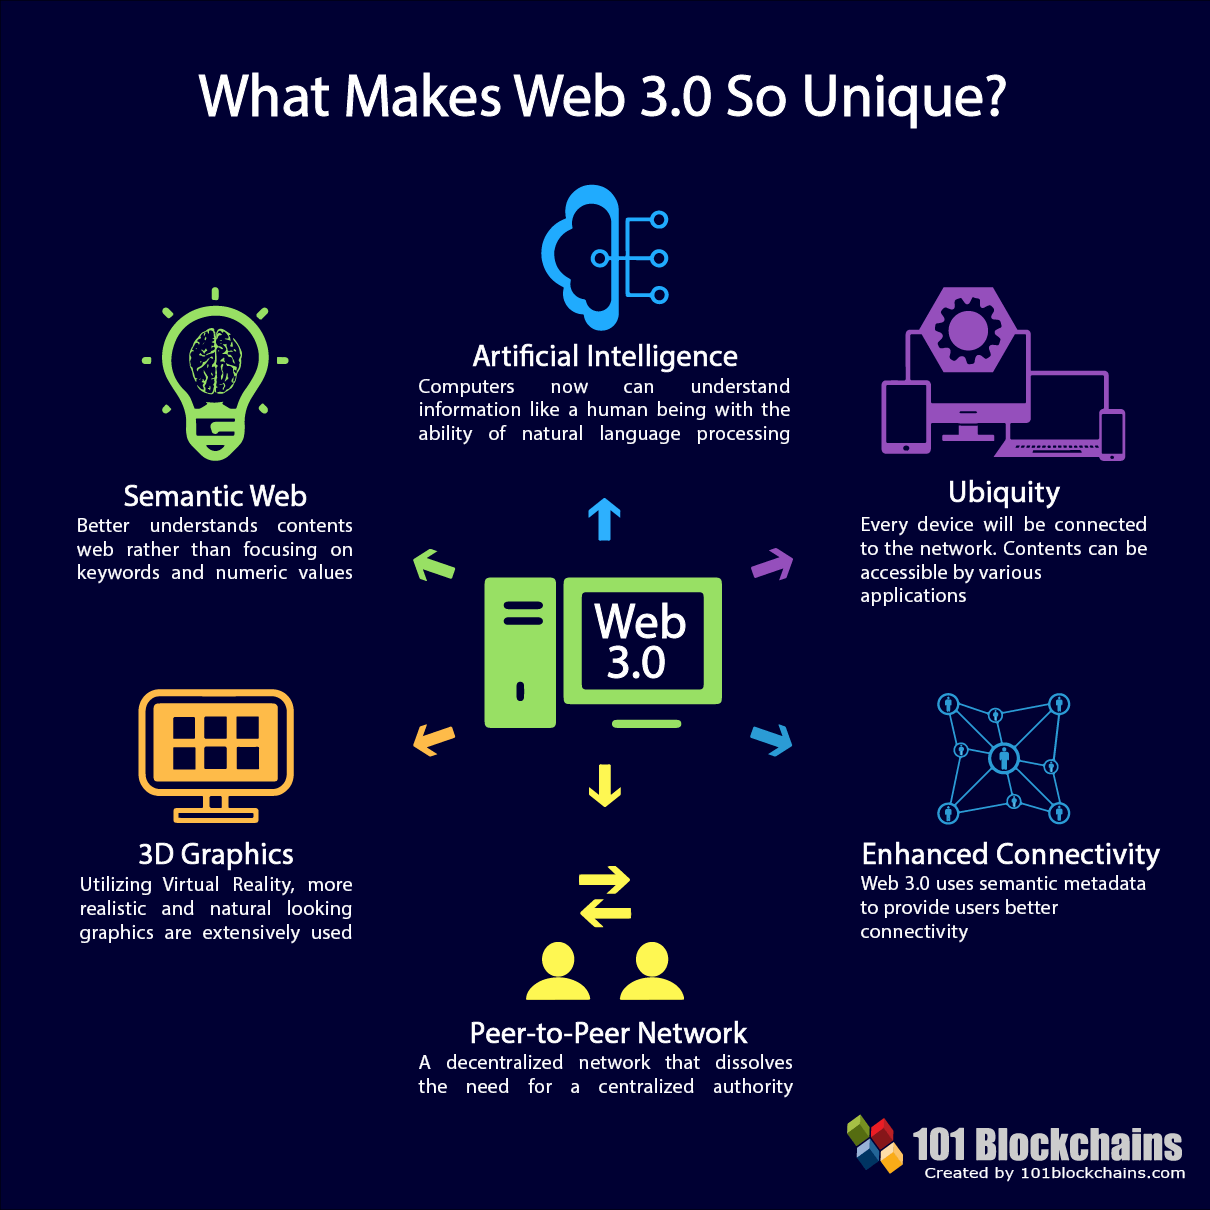 web 3.0 the internet of the future